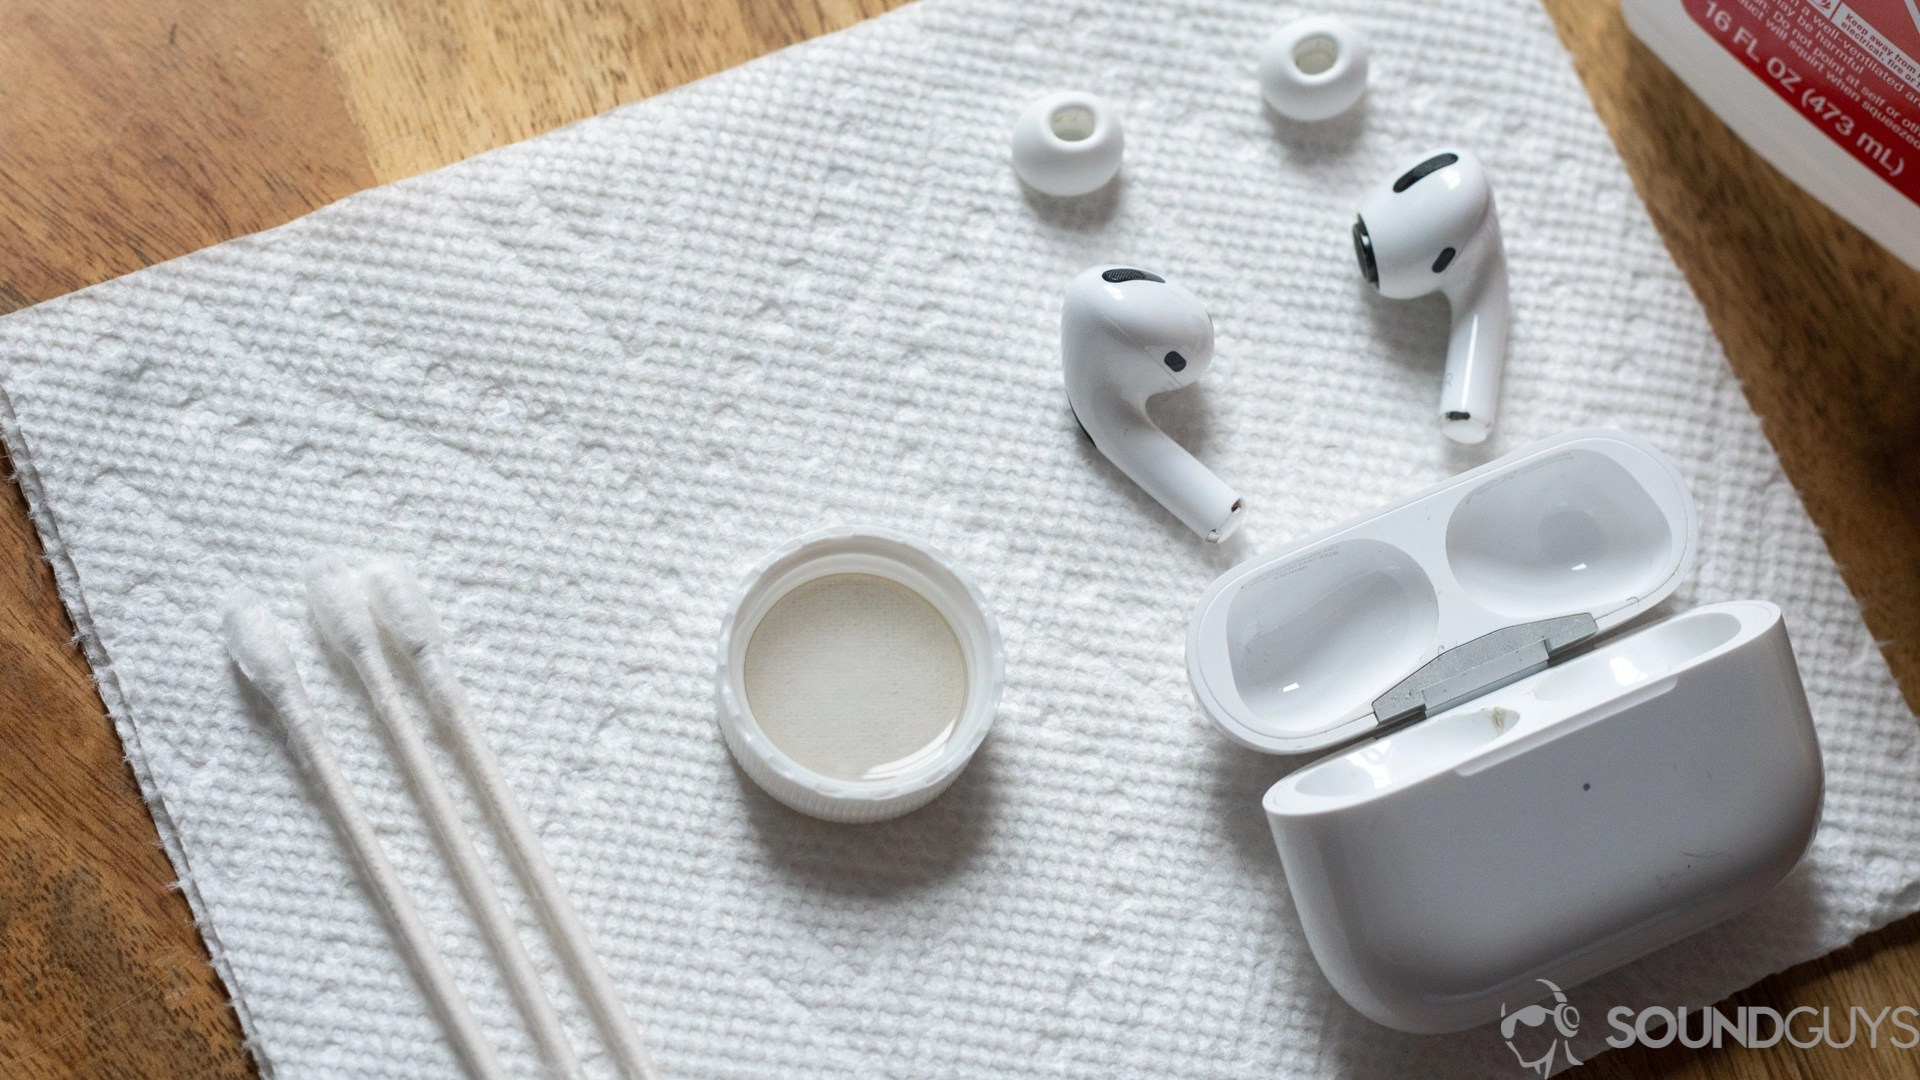 How To Clean Your Airpods Pro Soundguys